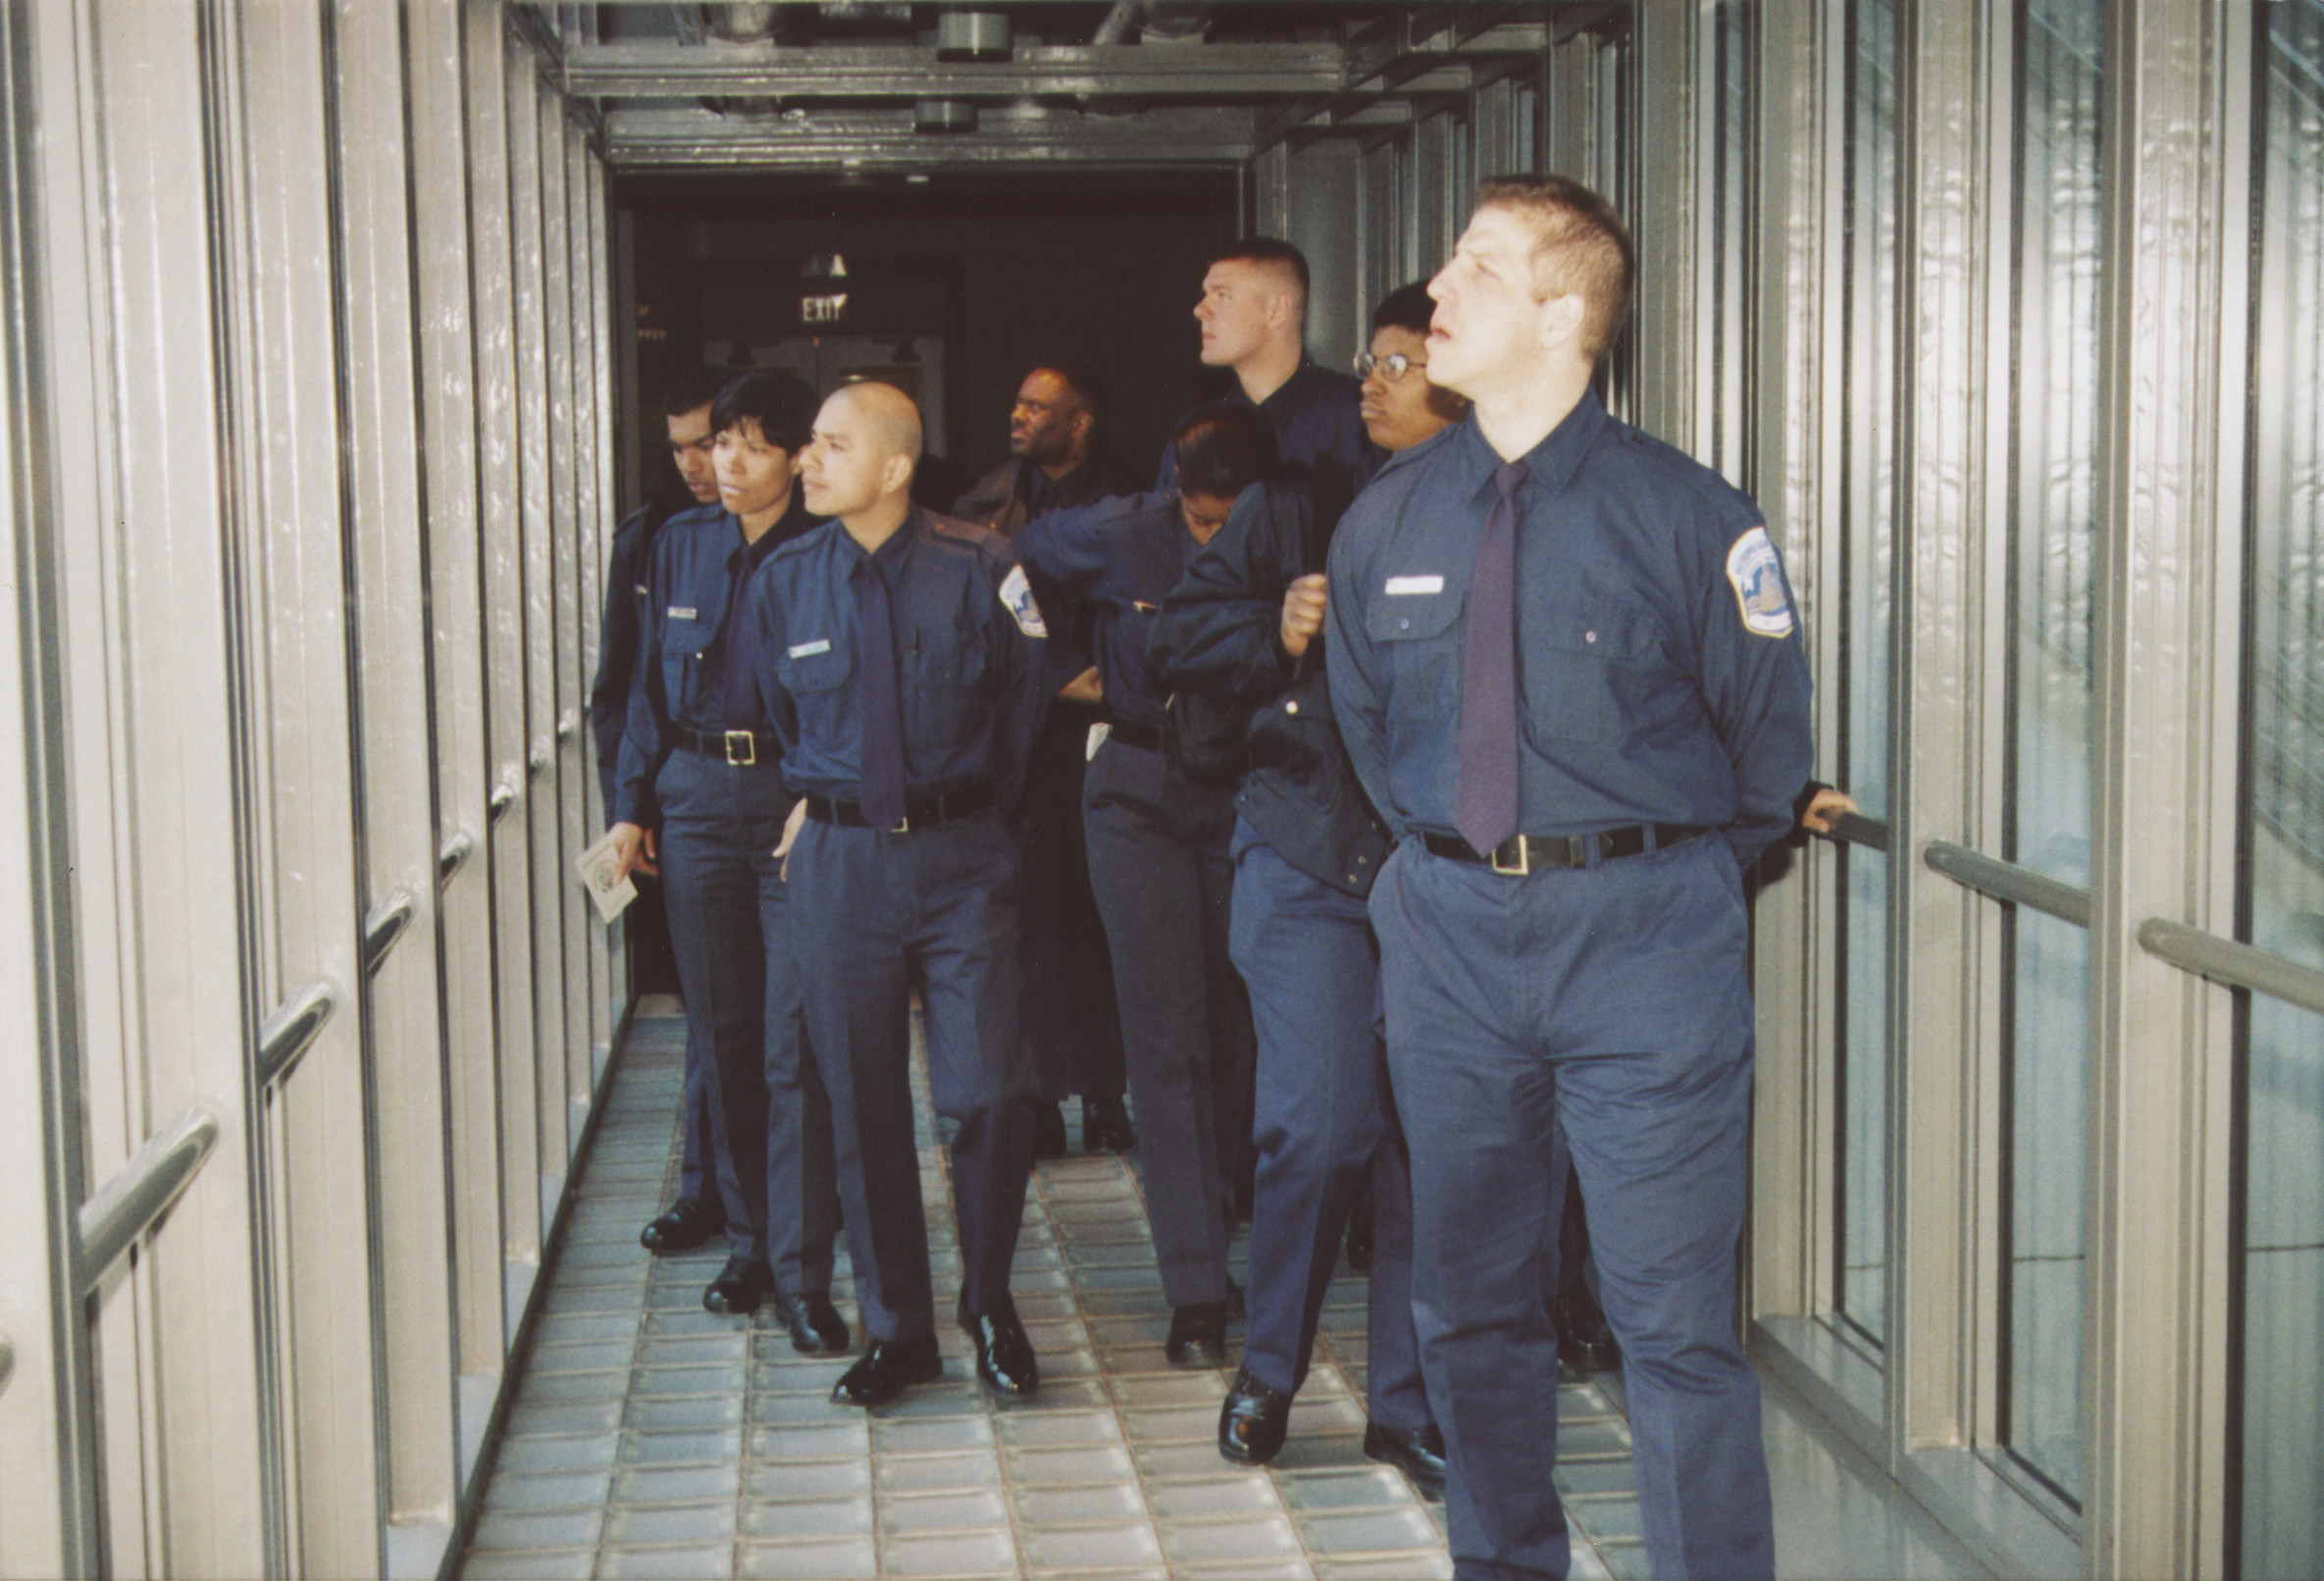 DC police training squad visits the U.S. Holocaust Memorial Museum.  Officers walk across the bridge where names of lost communities and individuals are etched in the glass while they tour the Permanent Exhibition.